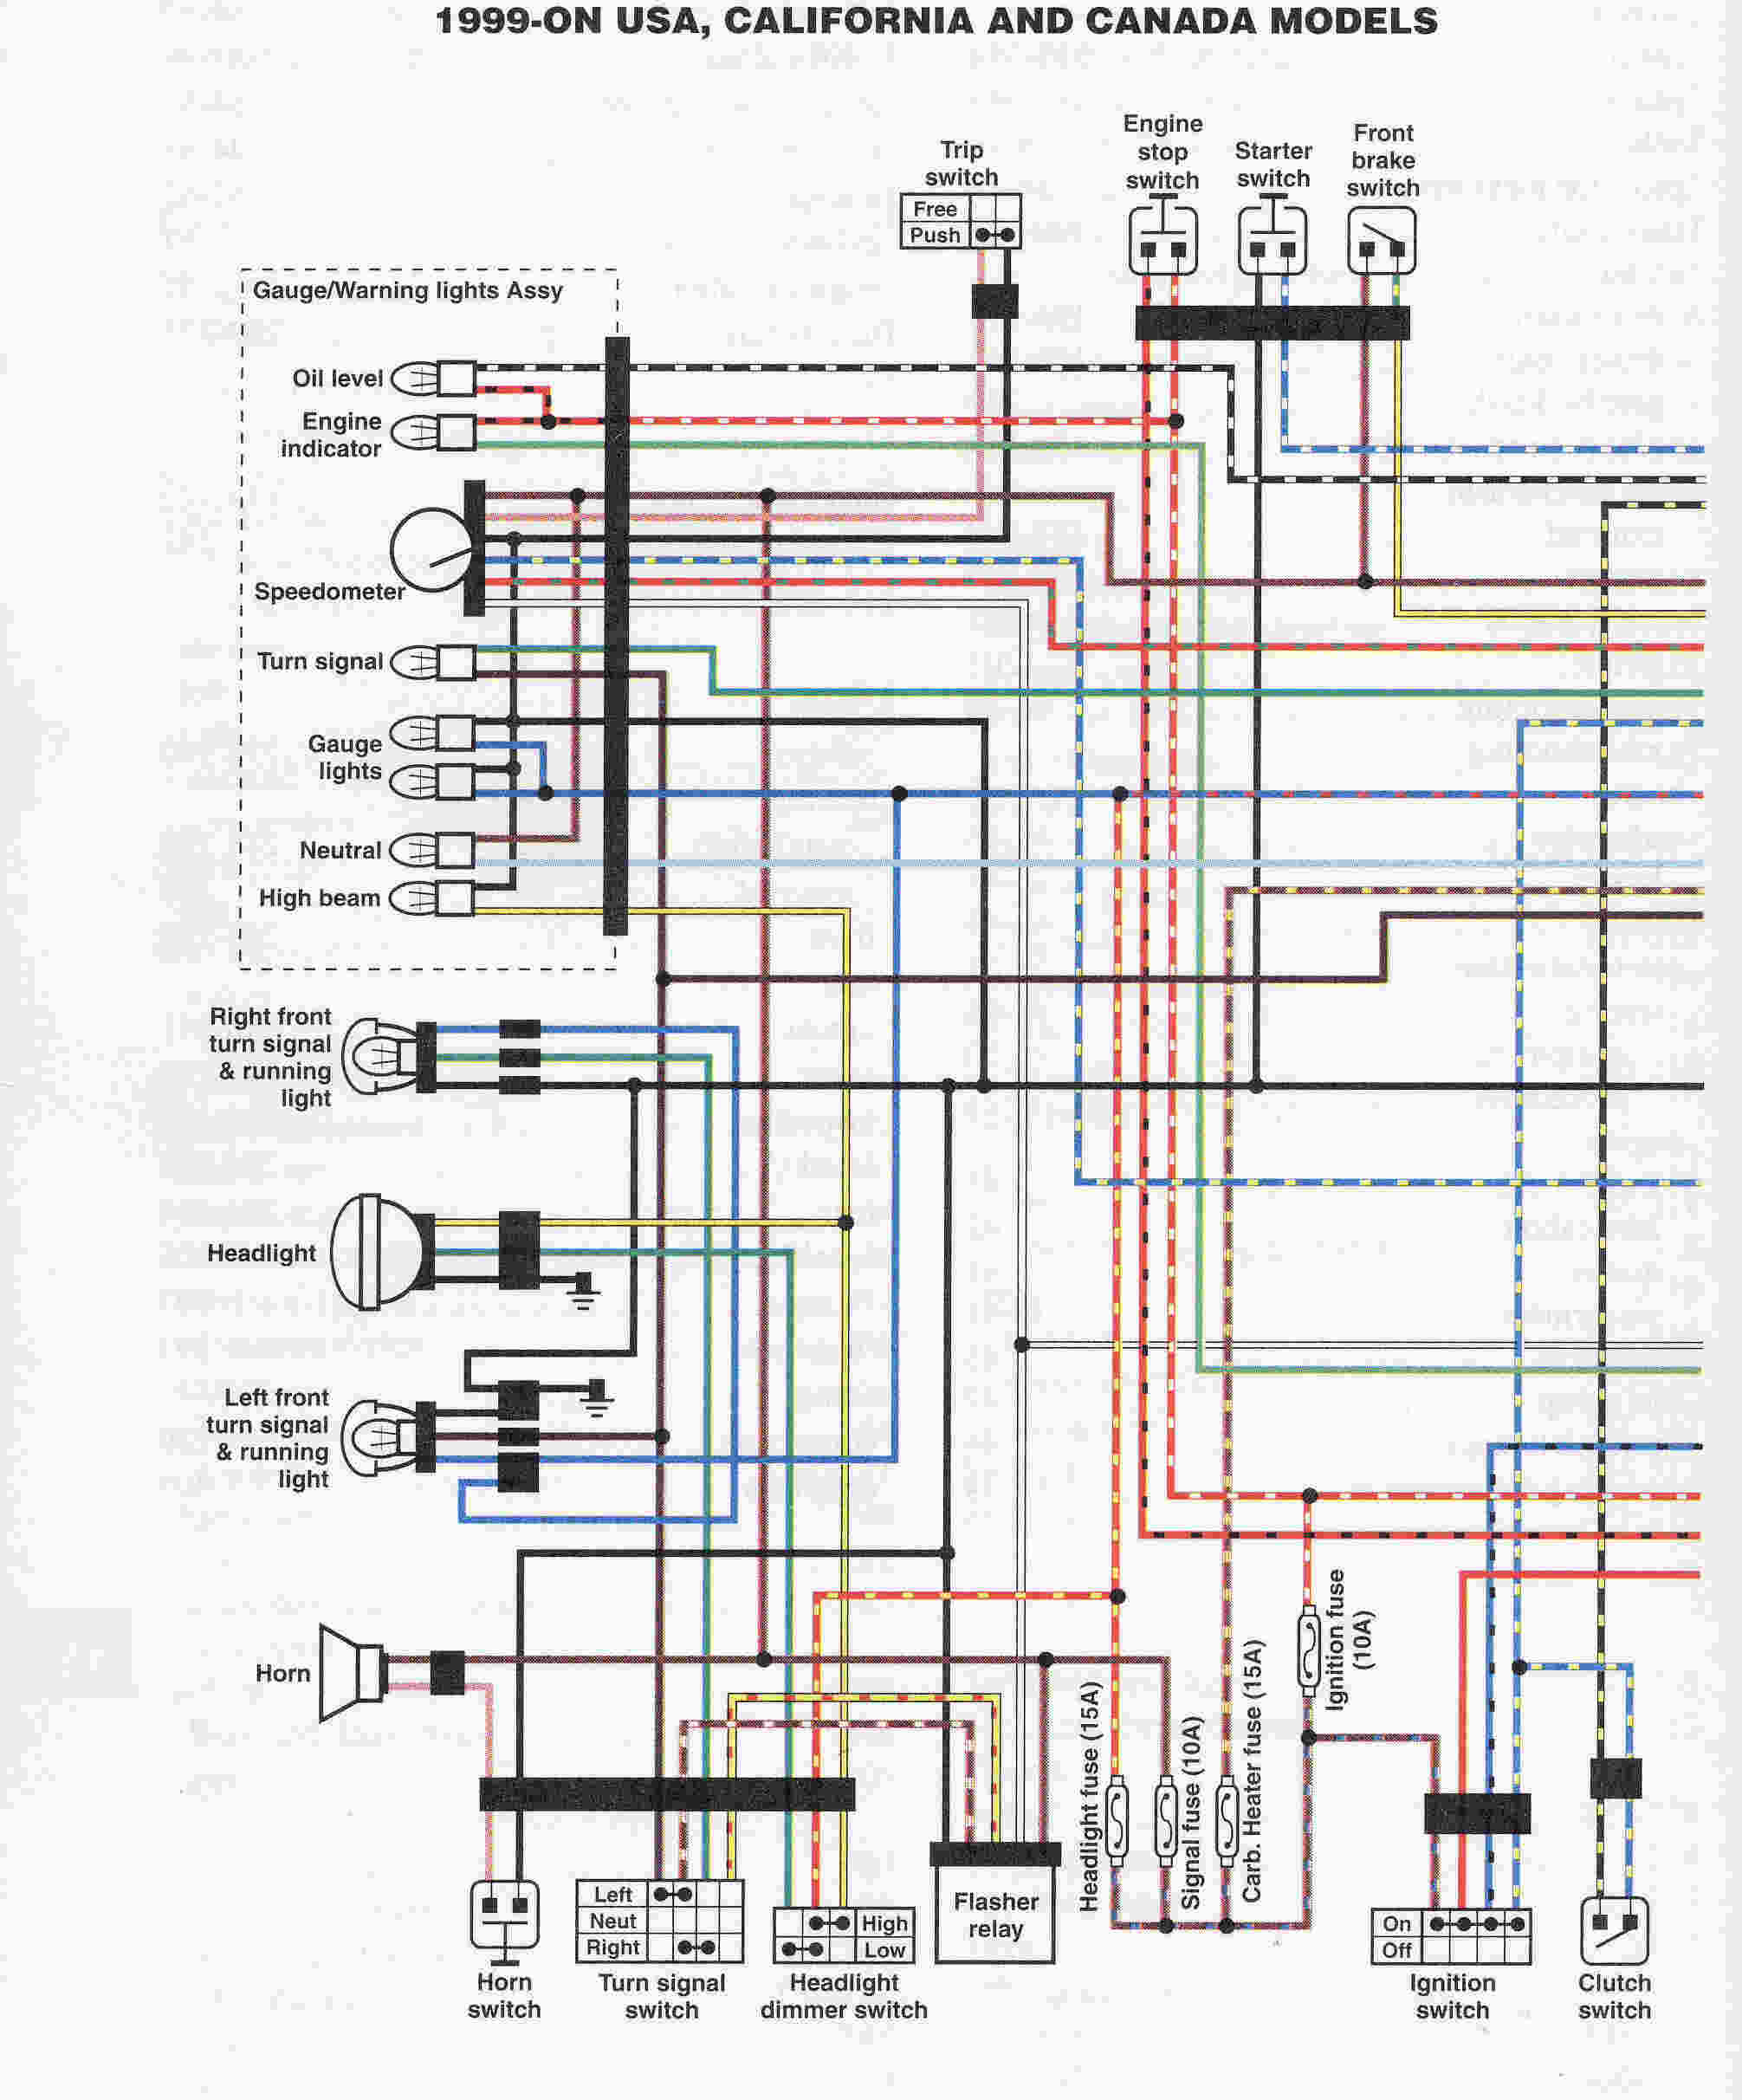 road star wiring diagram wiring diagram rh blaknwyt co 2007 yamaha road star 1700 wiring diagram 2007 yamaha road star 1700 wiring diagram